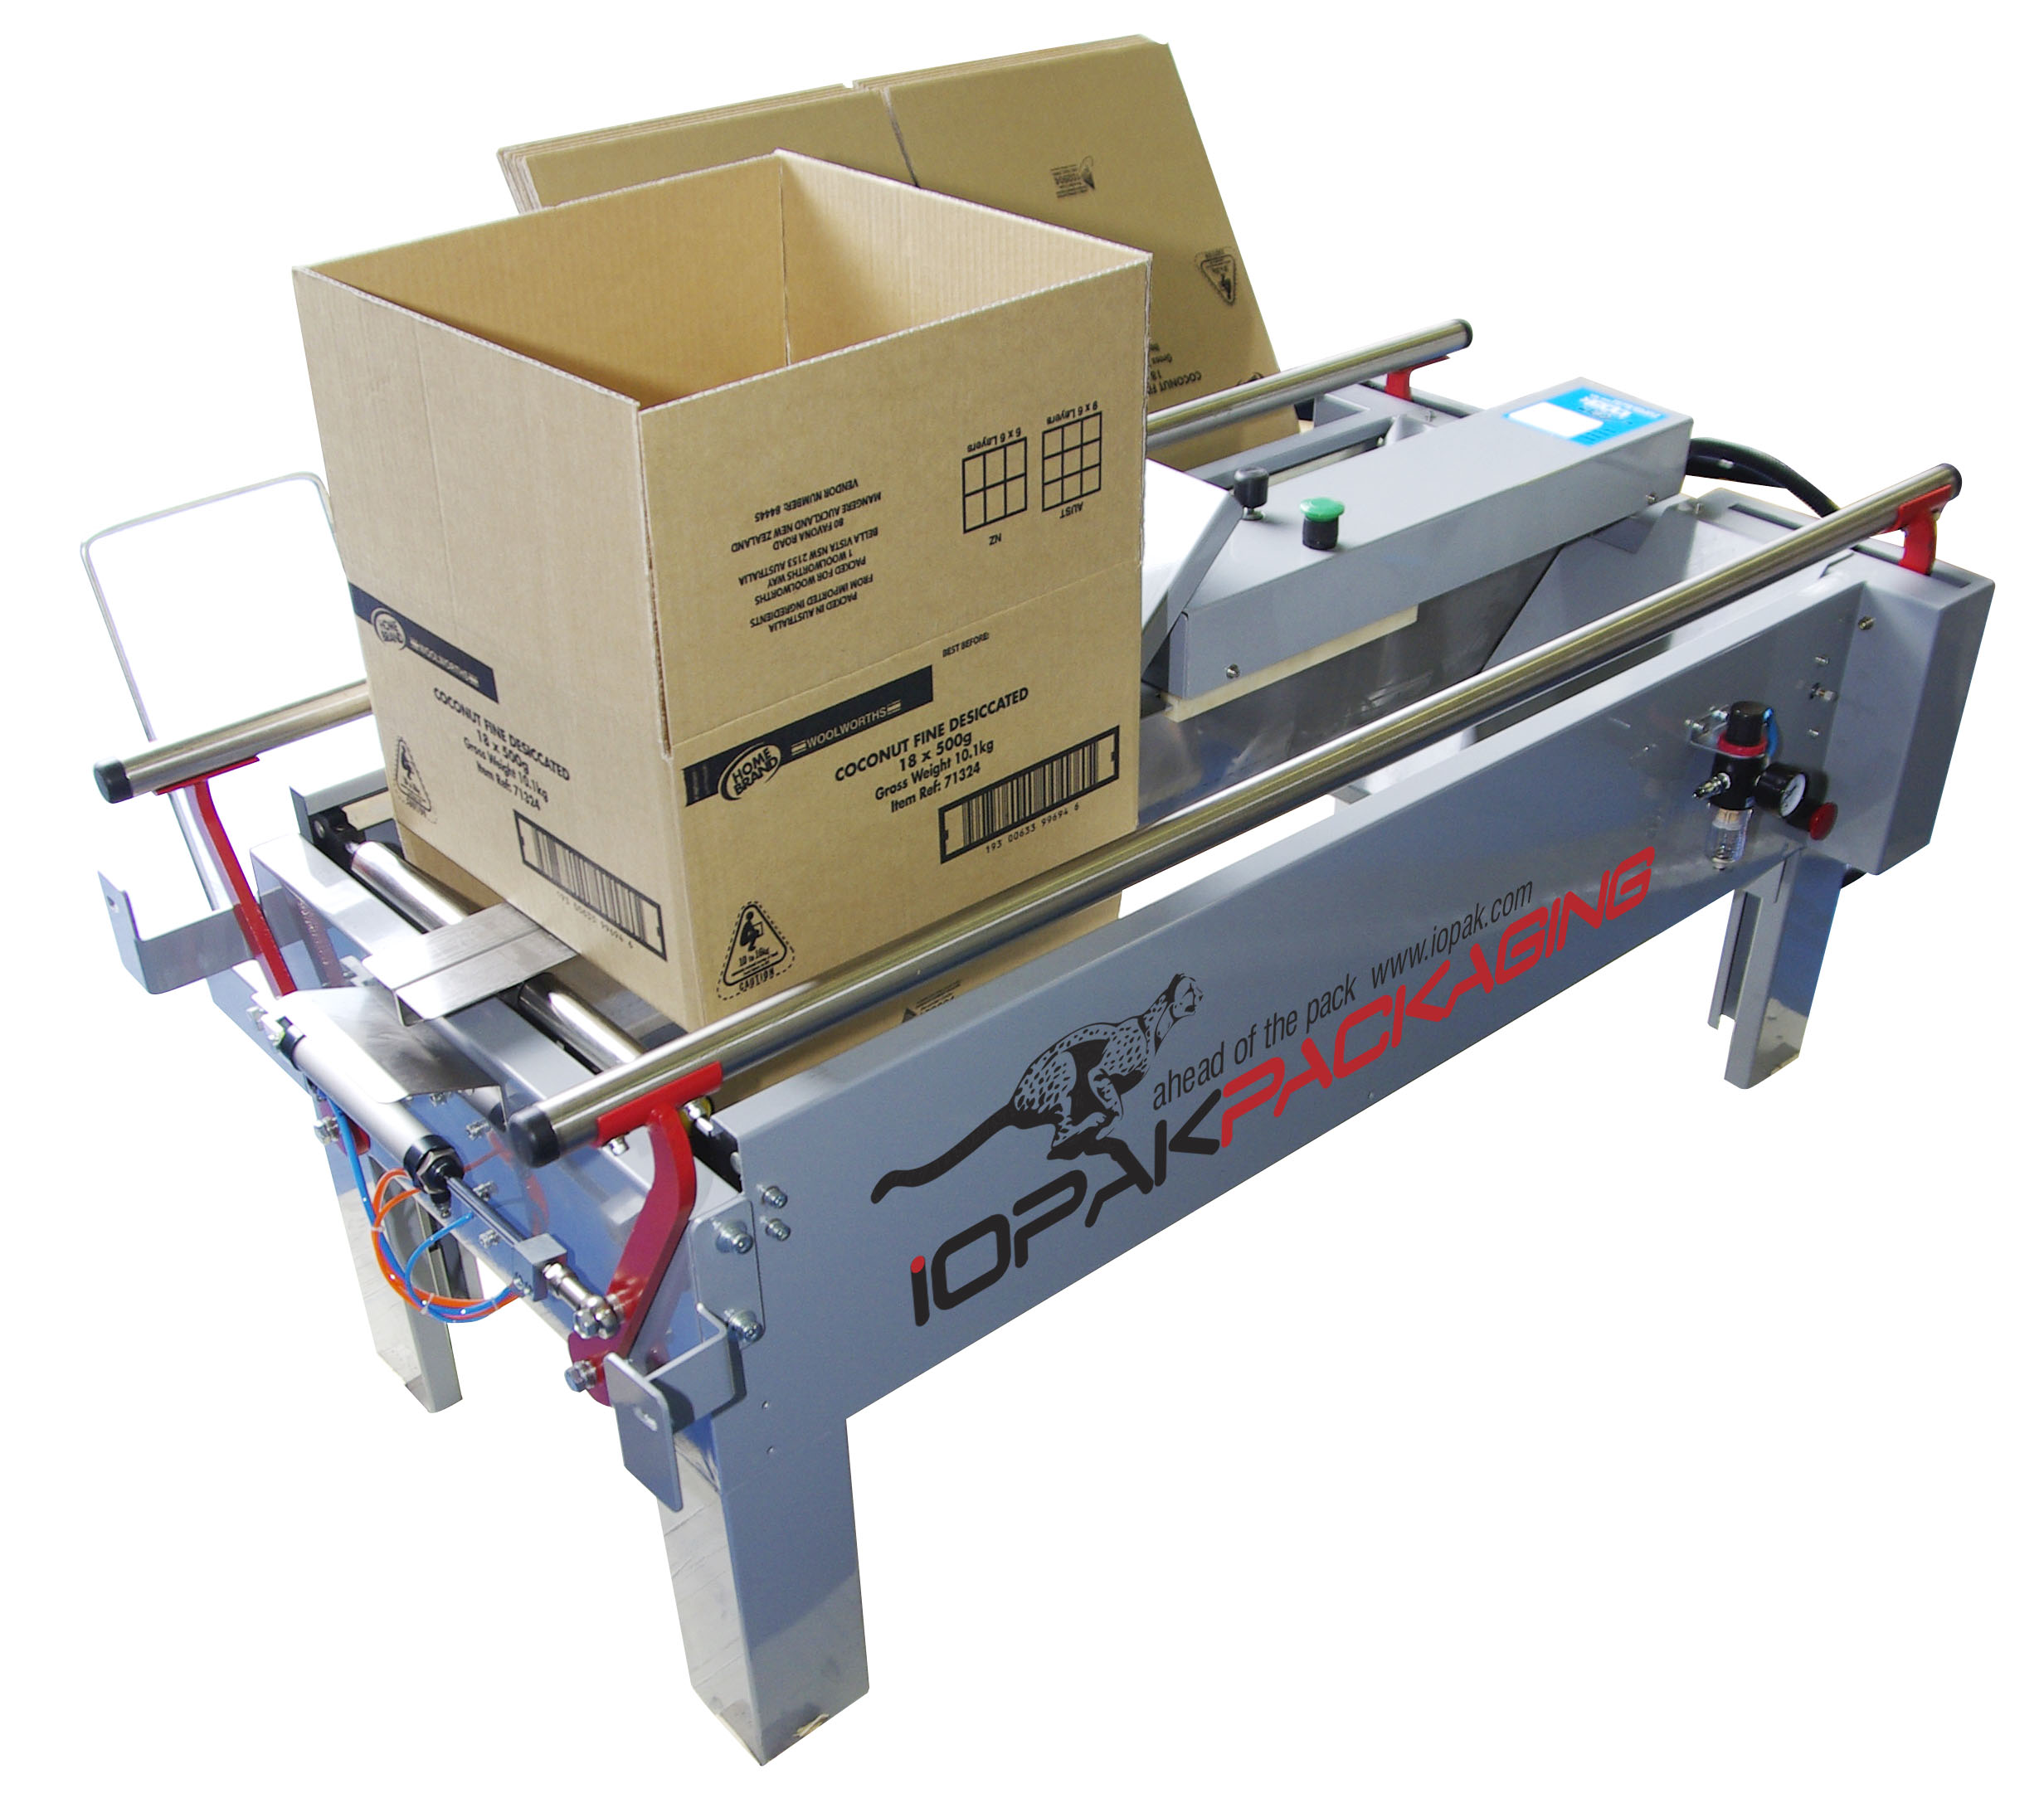 SD-CFS Auto Carton Folder and SealerIOPAK CF-10T Case Erector